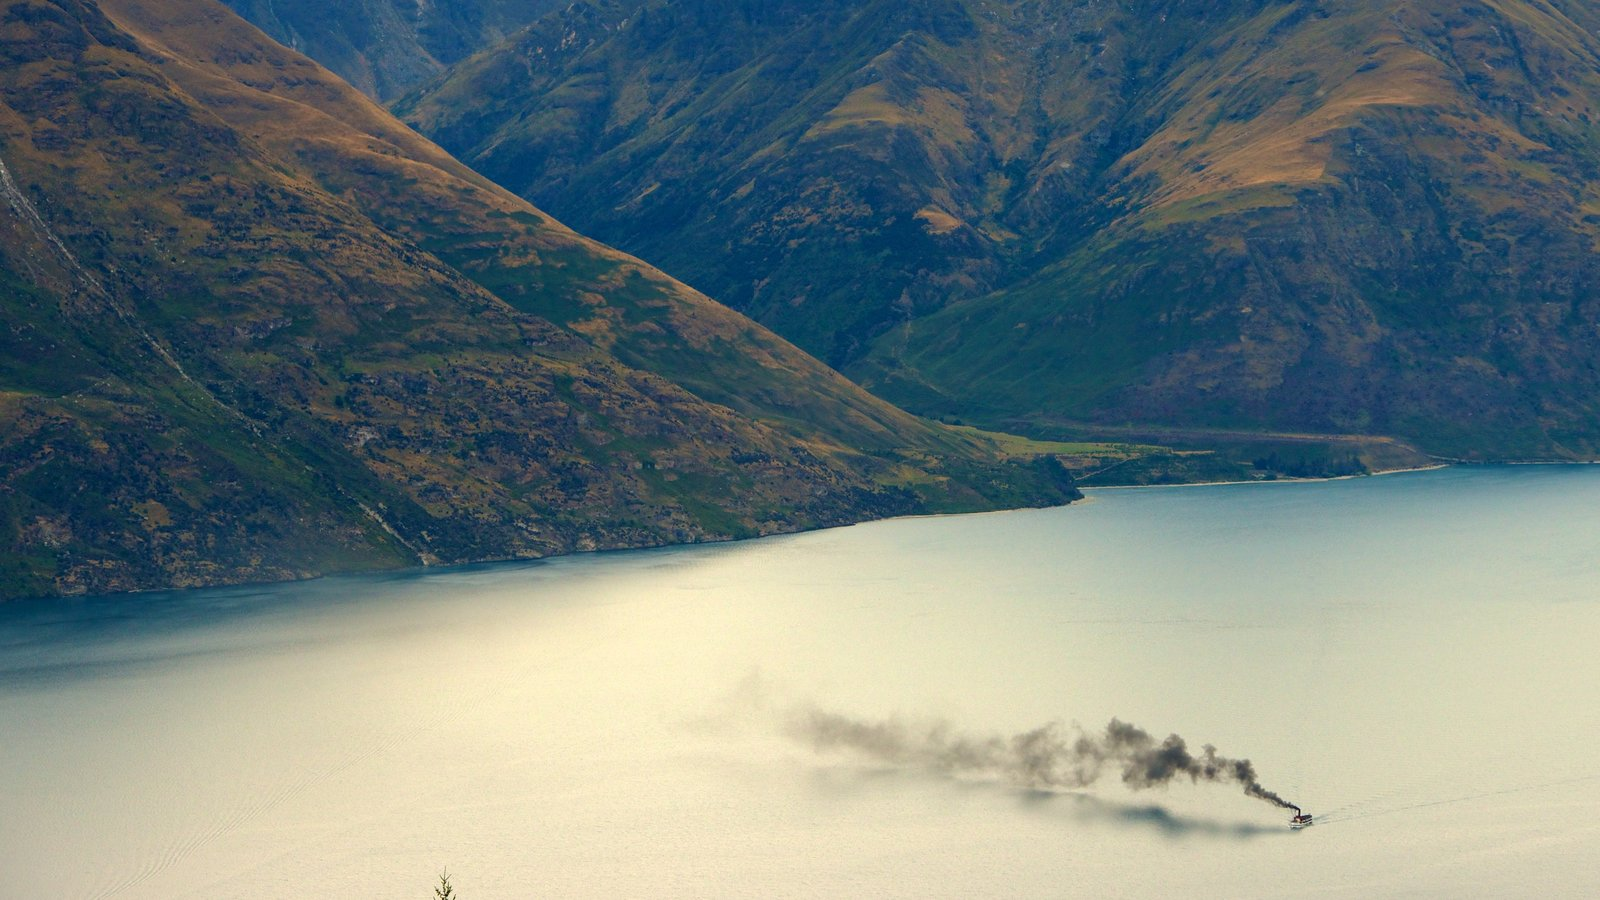 TSS Earnslaw Steamship featuring boating, landscape views and general coastal views